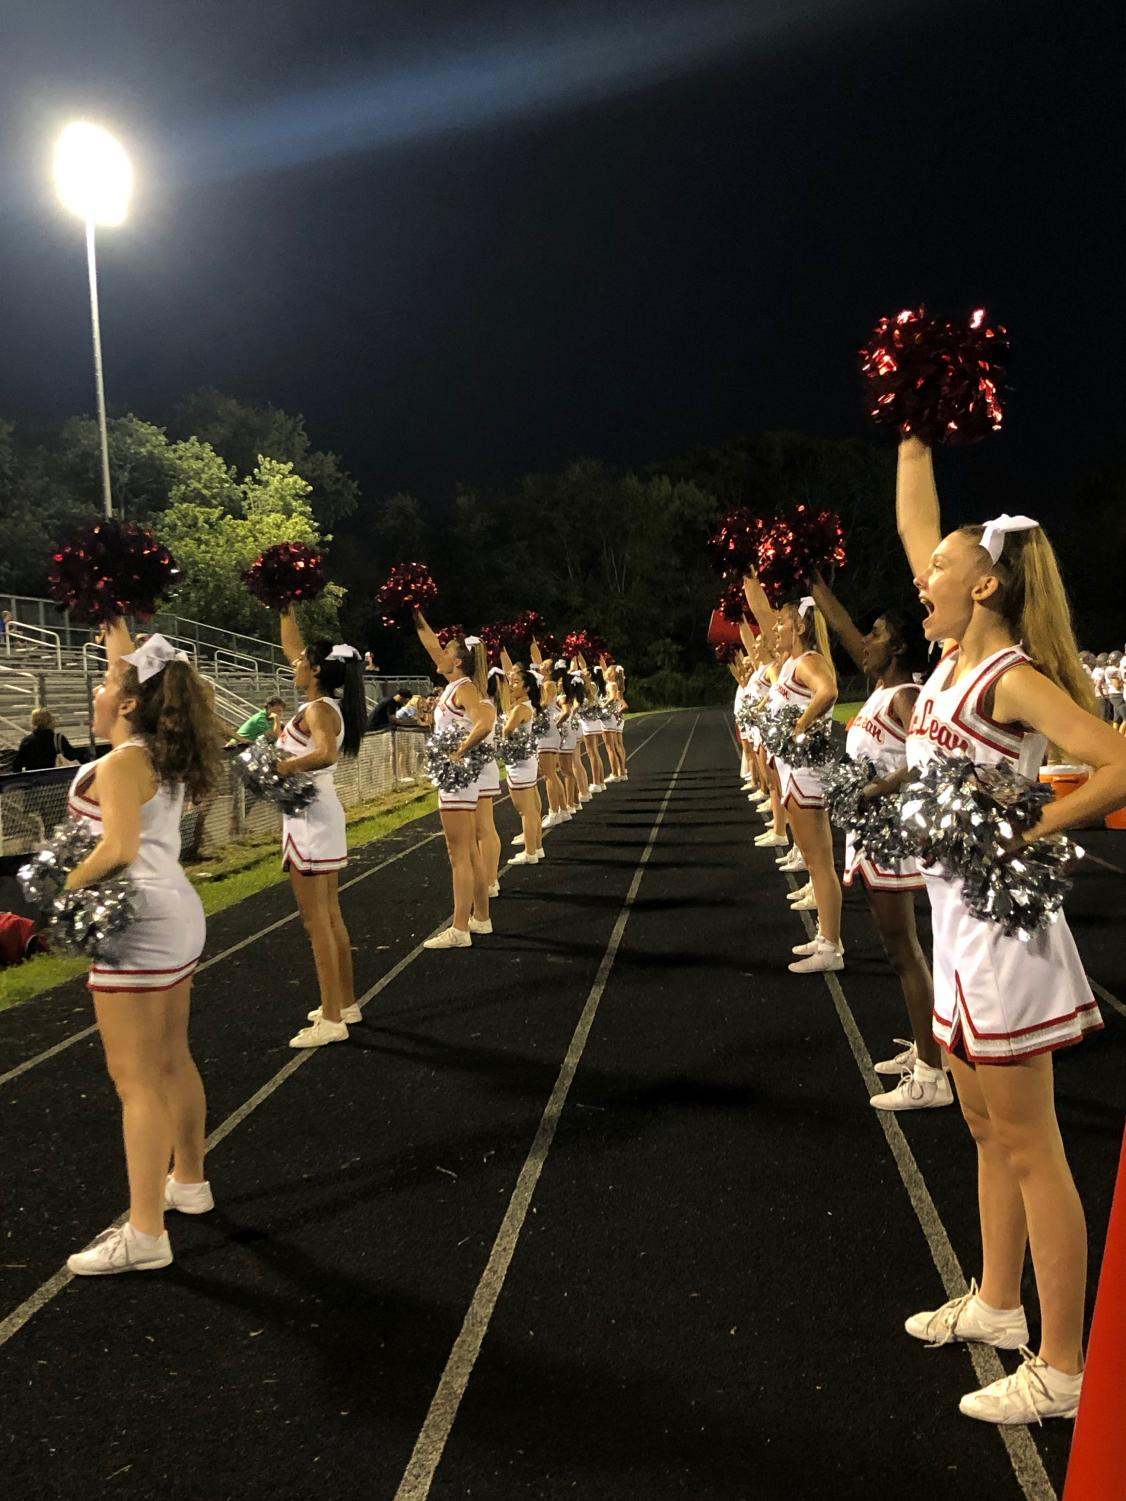 The+varsity+cheer+team+turn+toward+the+stands+and+start+a+cheer.+The+cheerleaders+travel+with+the+football+team+to+every+game.